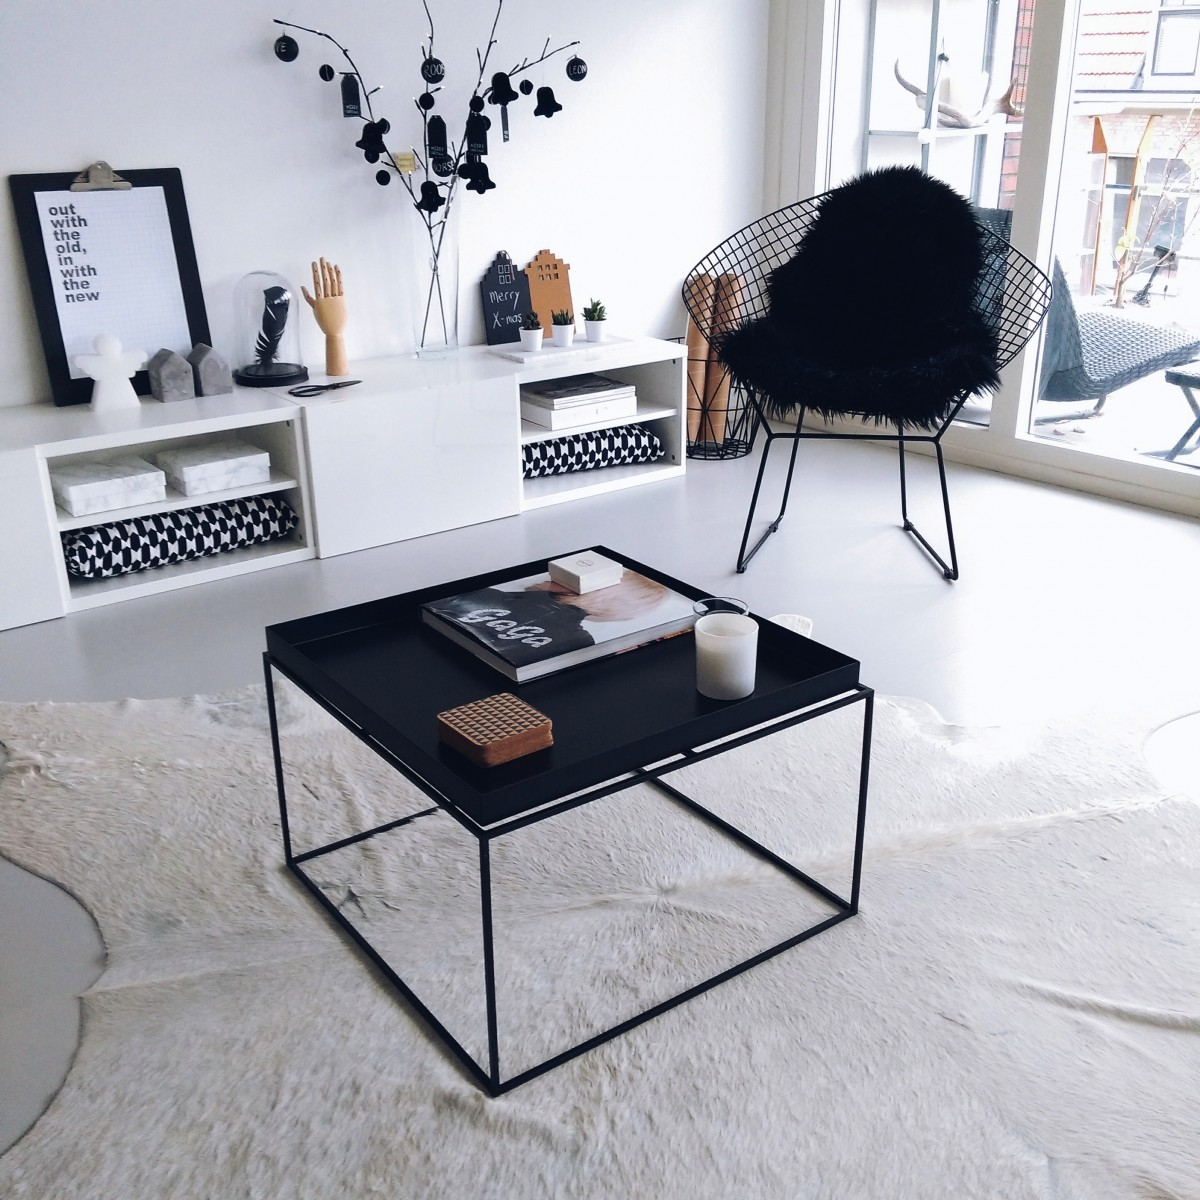 Some Bedroom Inspo Freya Broni Irish Fashion And Beauty Blogger